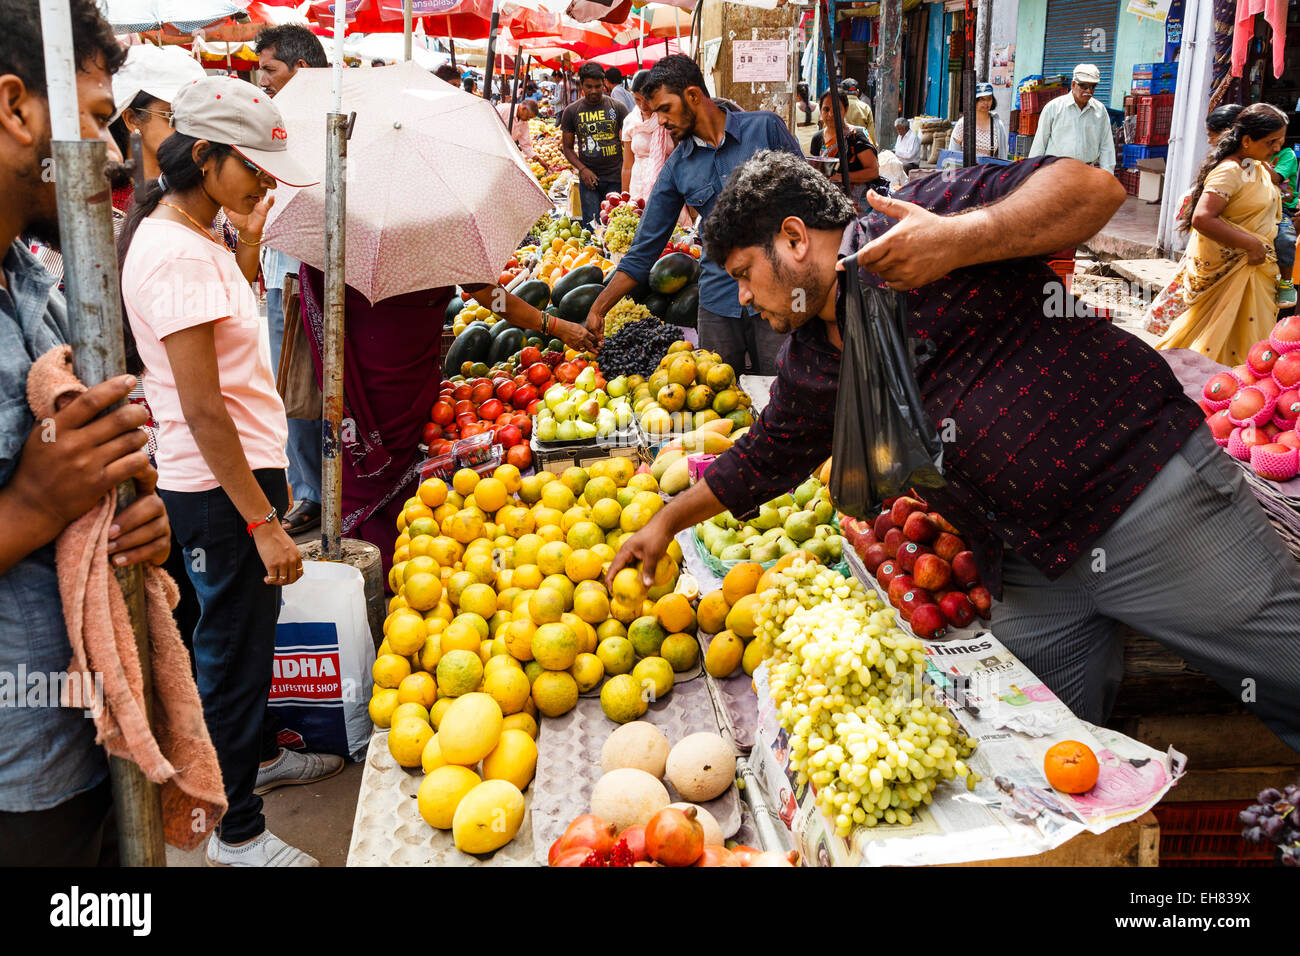 Fruits and vegetables stalls at Mapusa Market, Goa, India, Asia - Stock Image